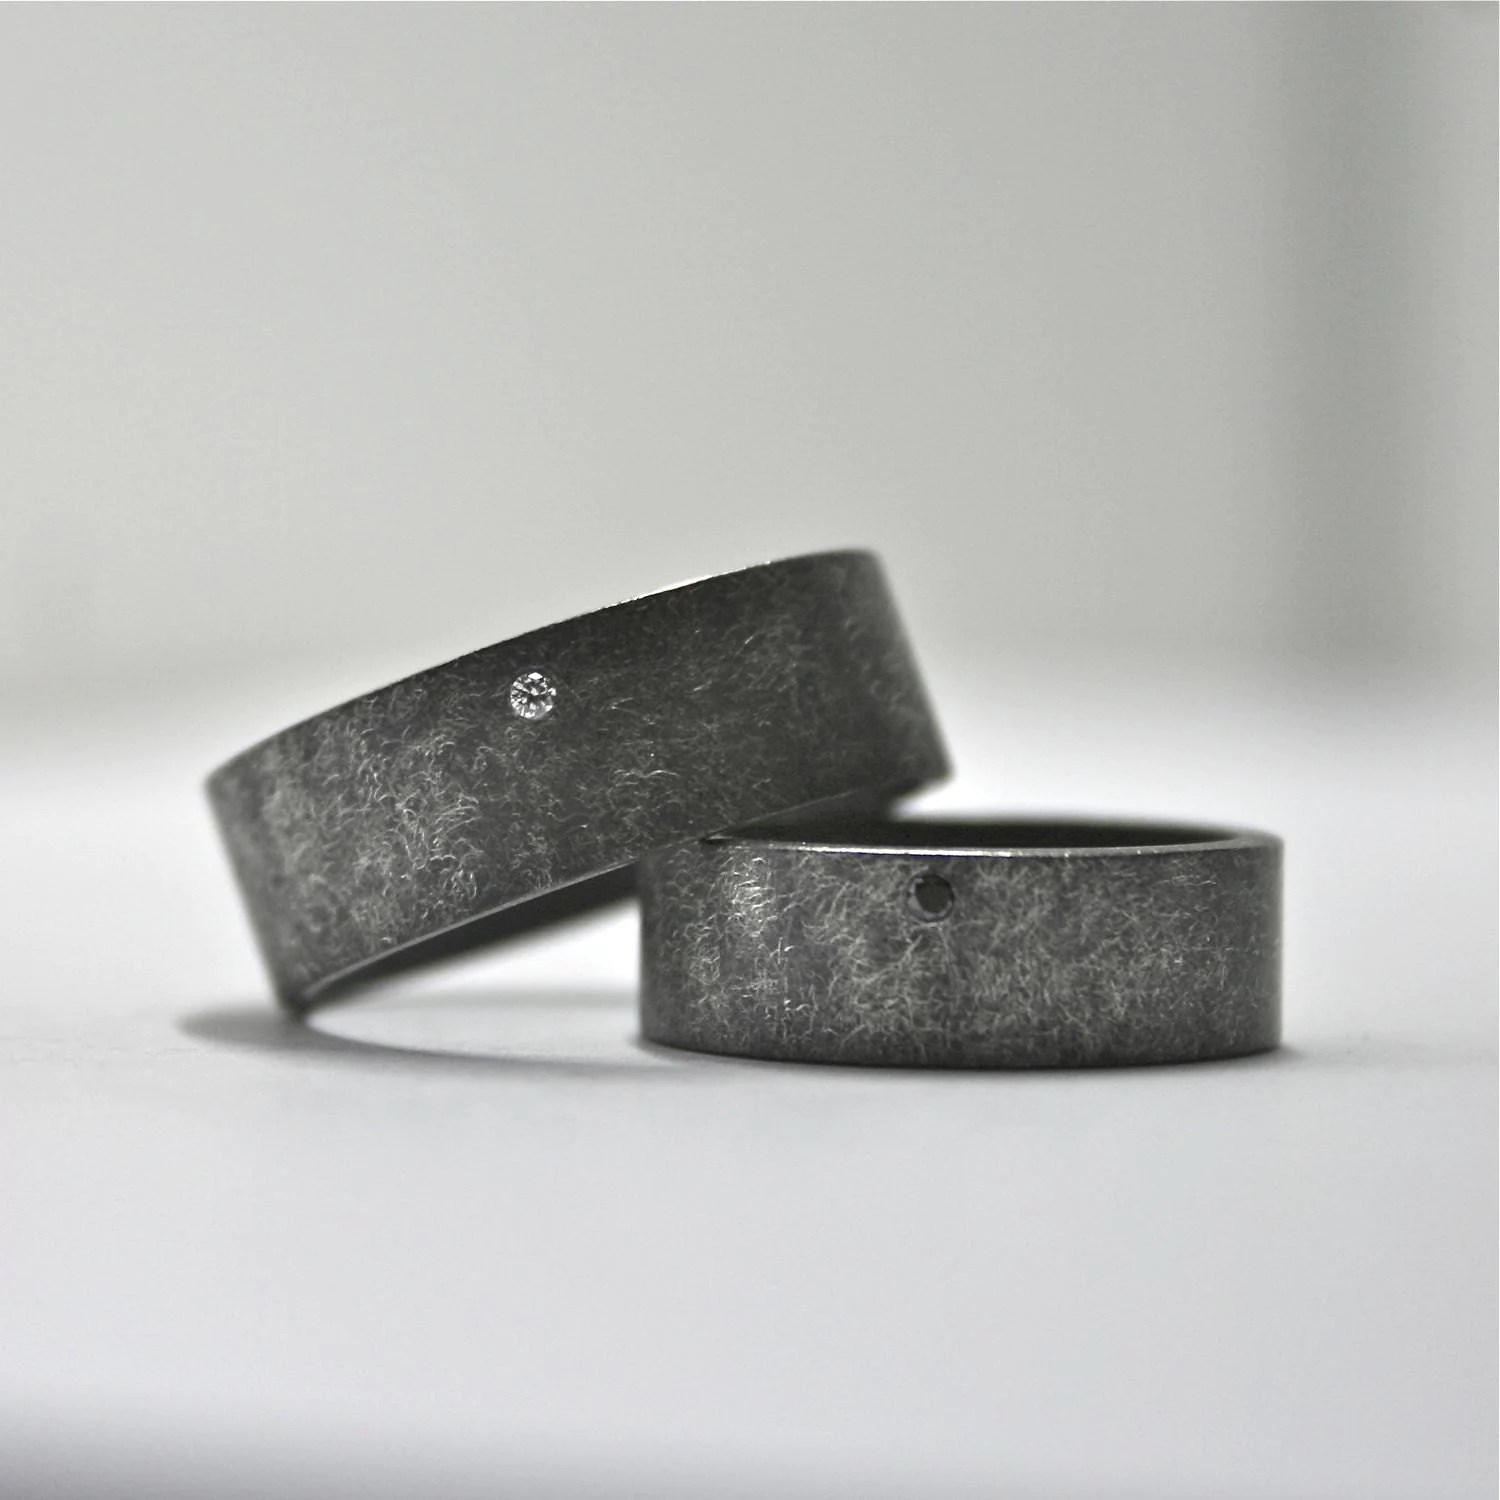 oxidized sterling silver and diamond ebay wedding rings sets zoom